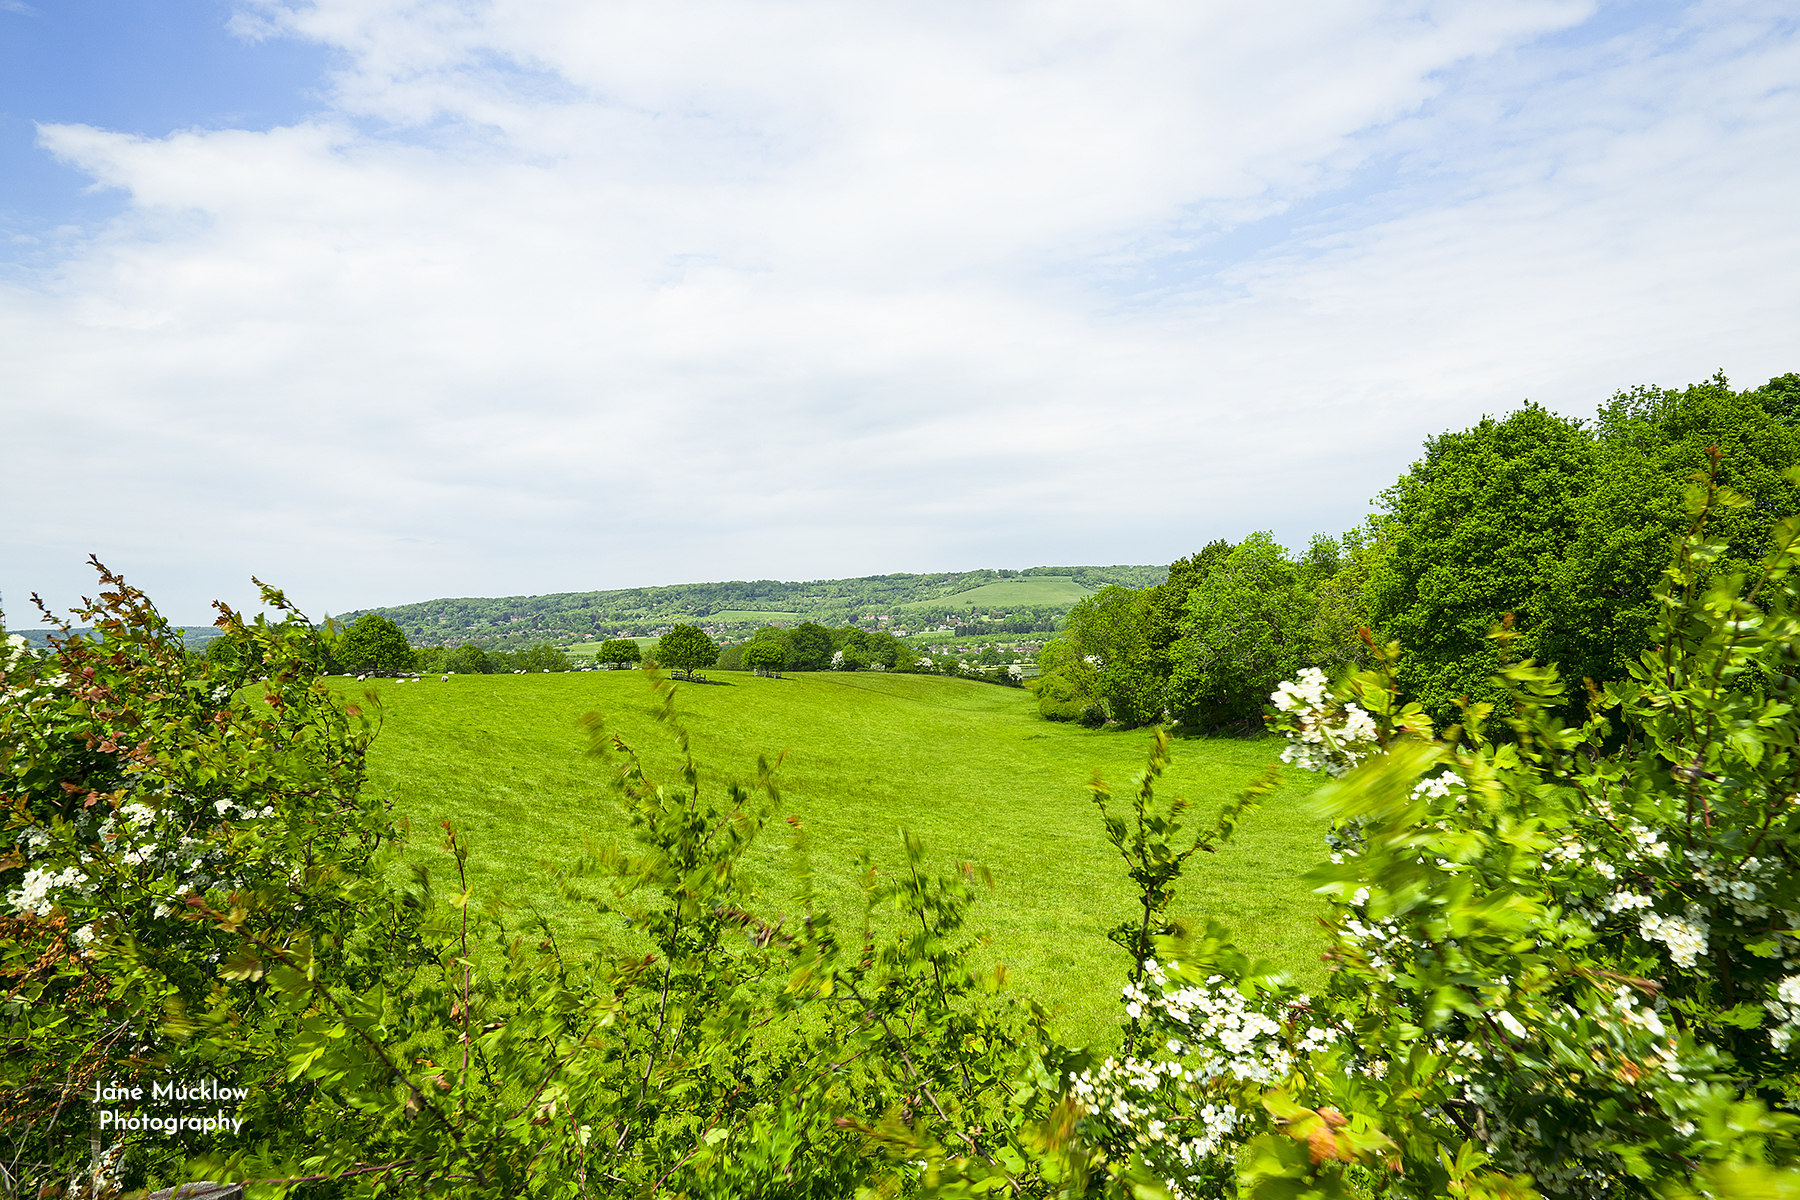 Photo of the view towards Kemsing from Seal Chart, with may blossom, by Jane Mucklow